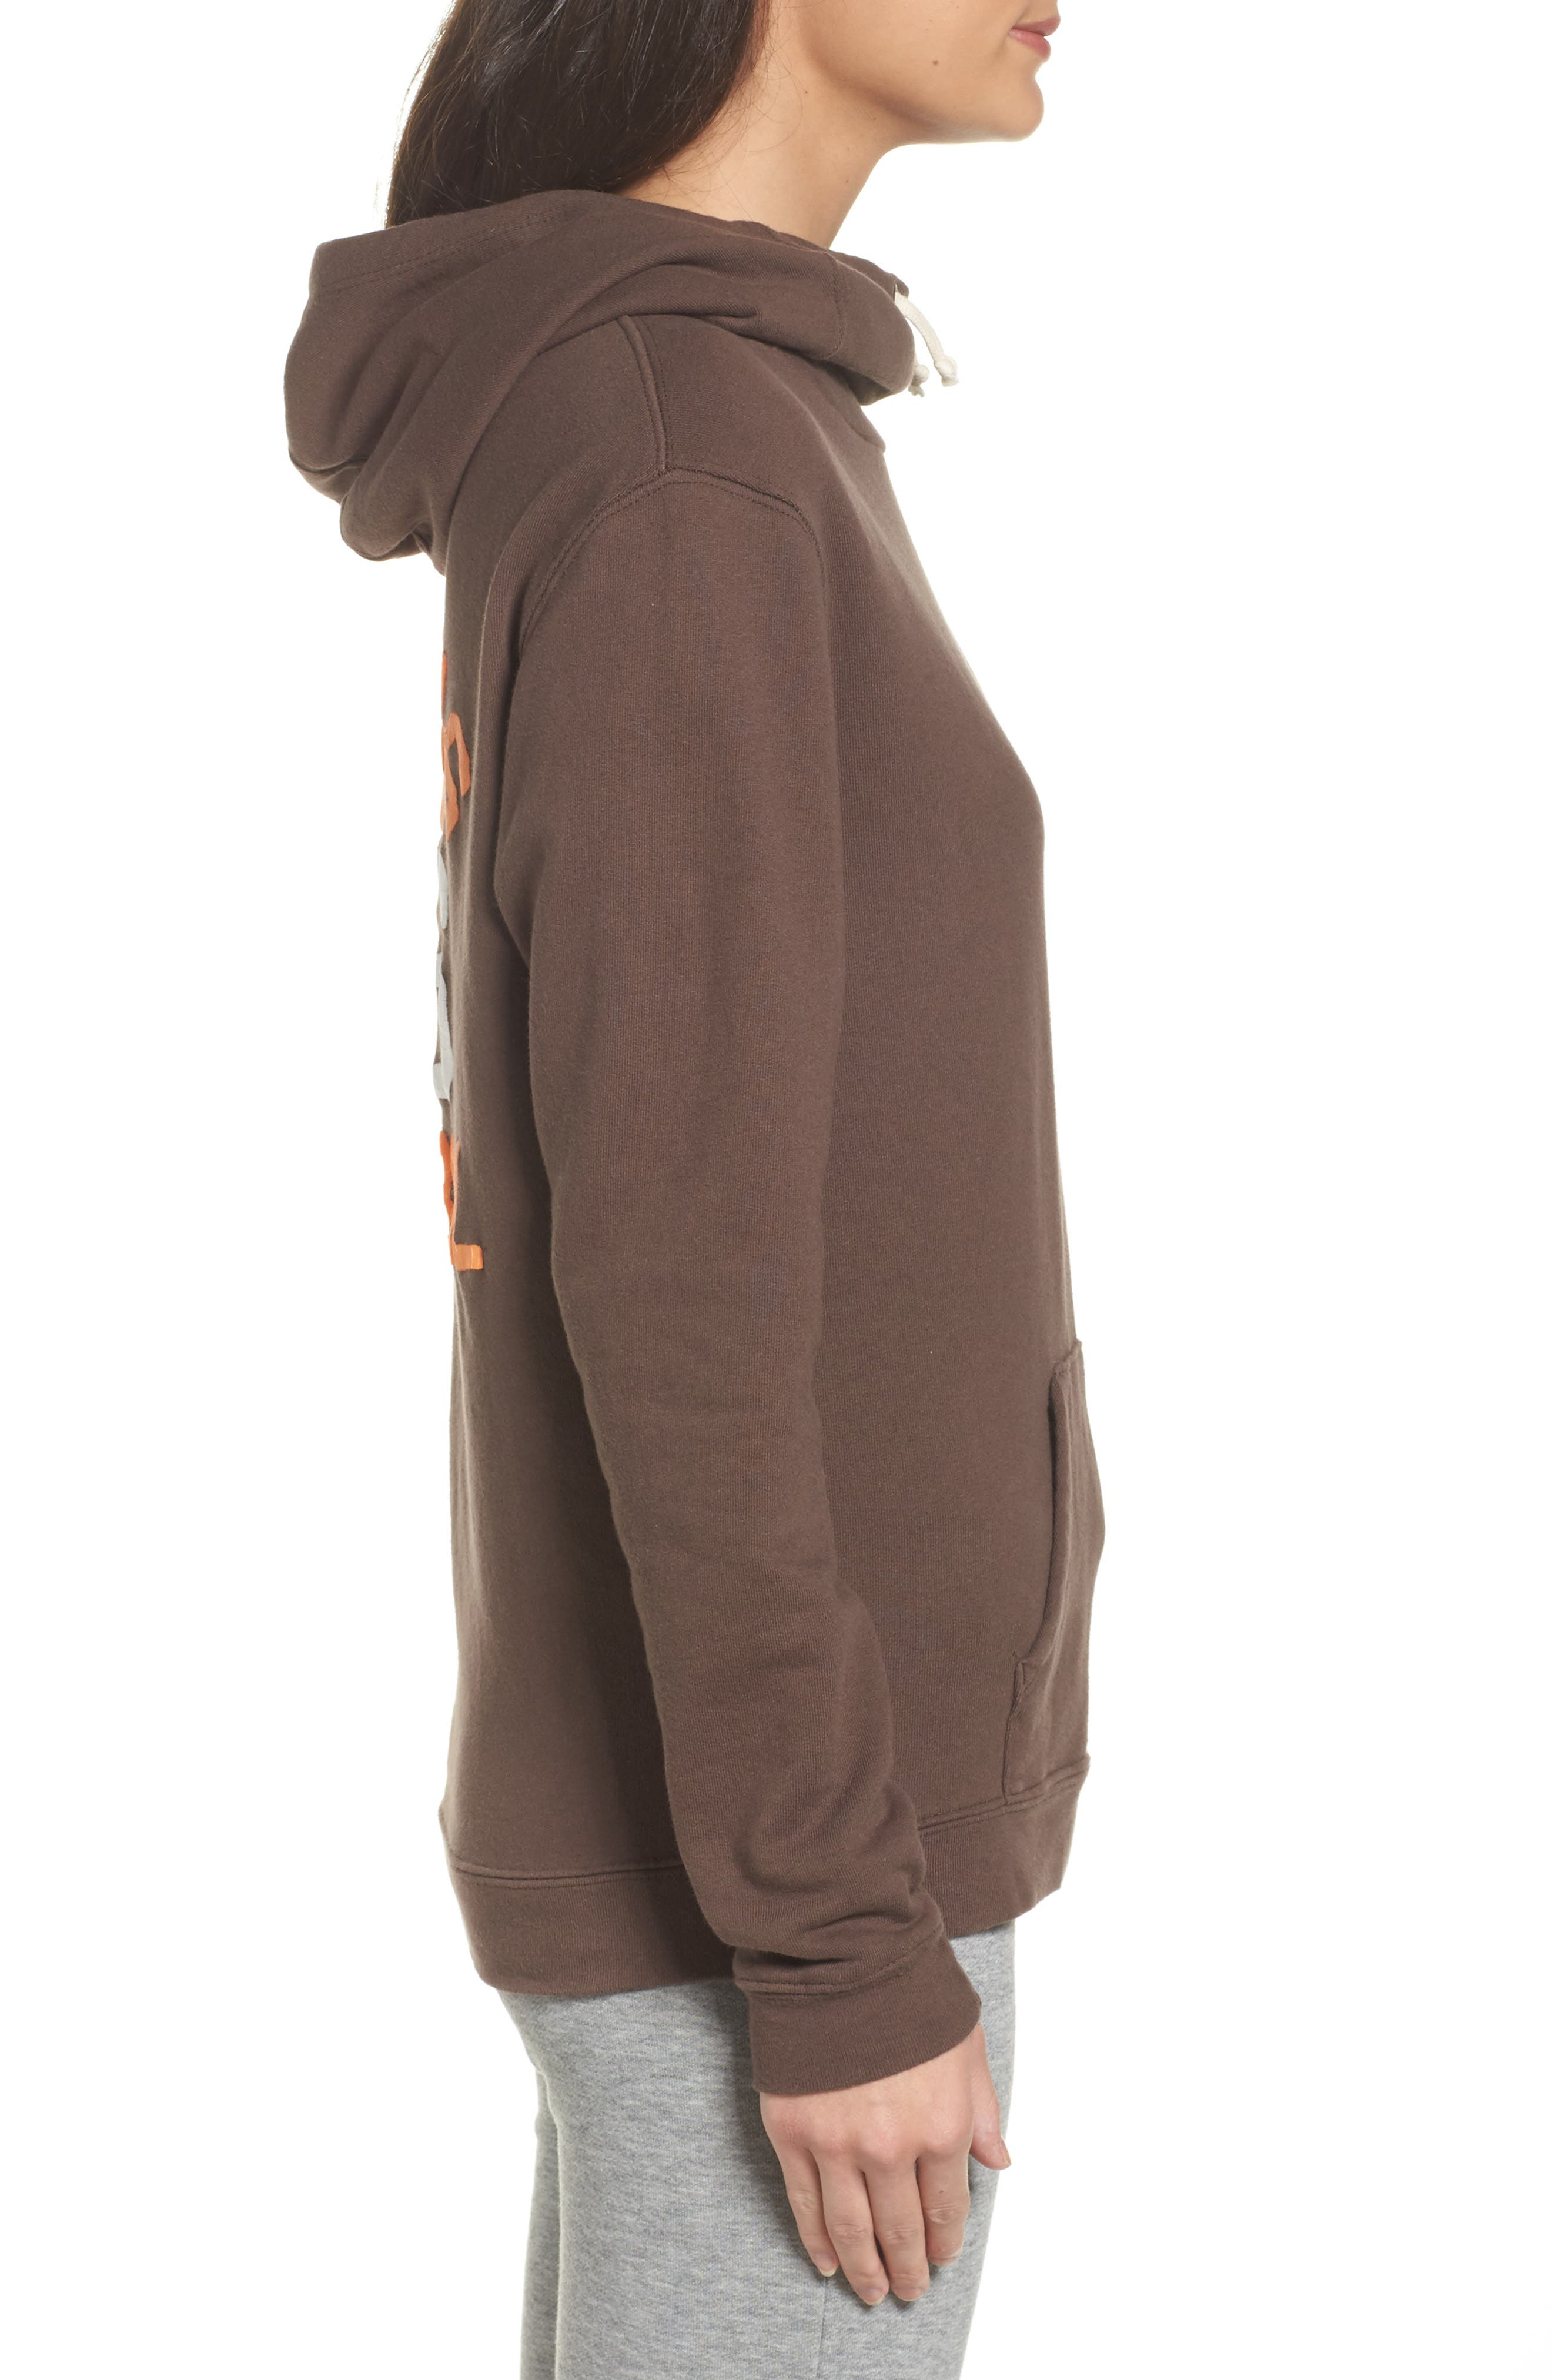 NFL Cleveland Browns Sunday Hoodie,                             Alternate thumbnail 3, color,                             Dark Chocolate